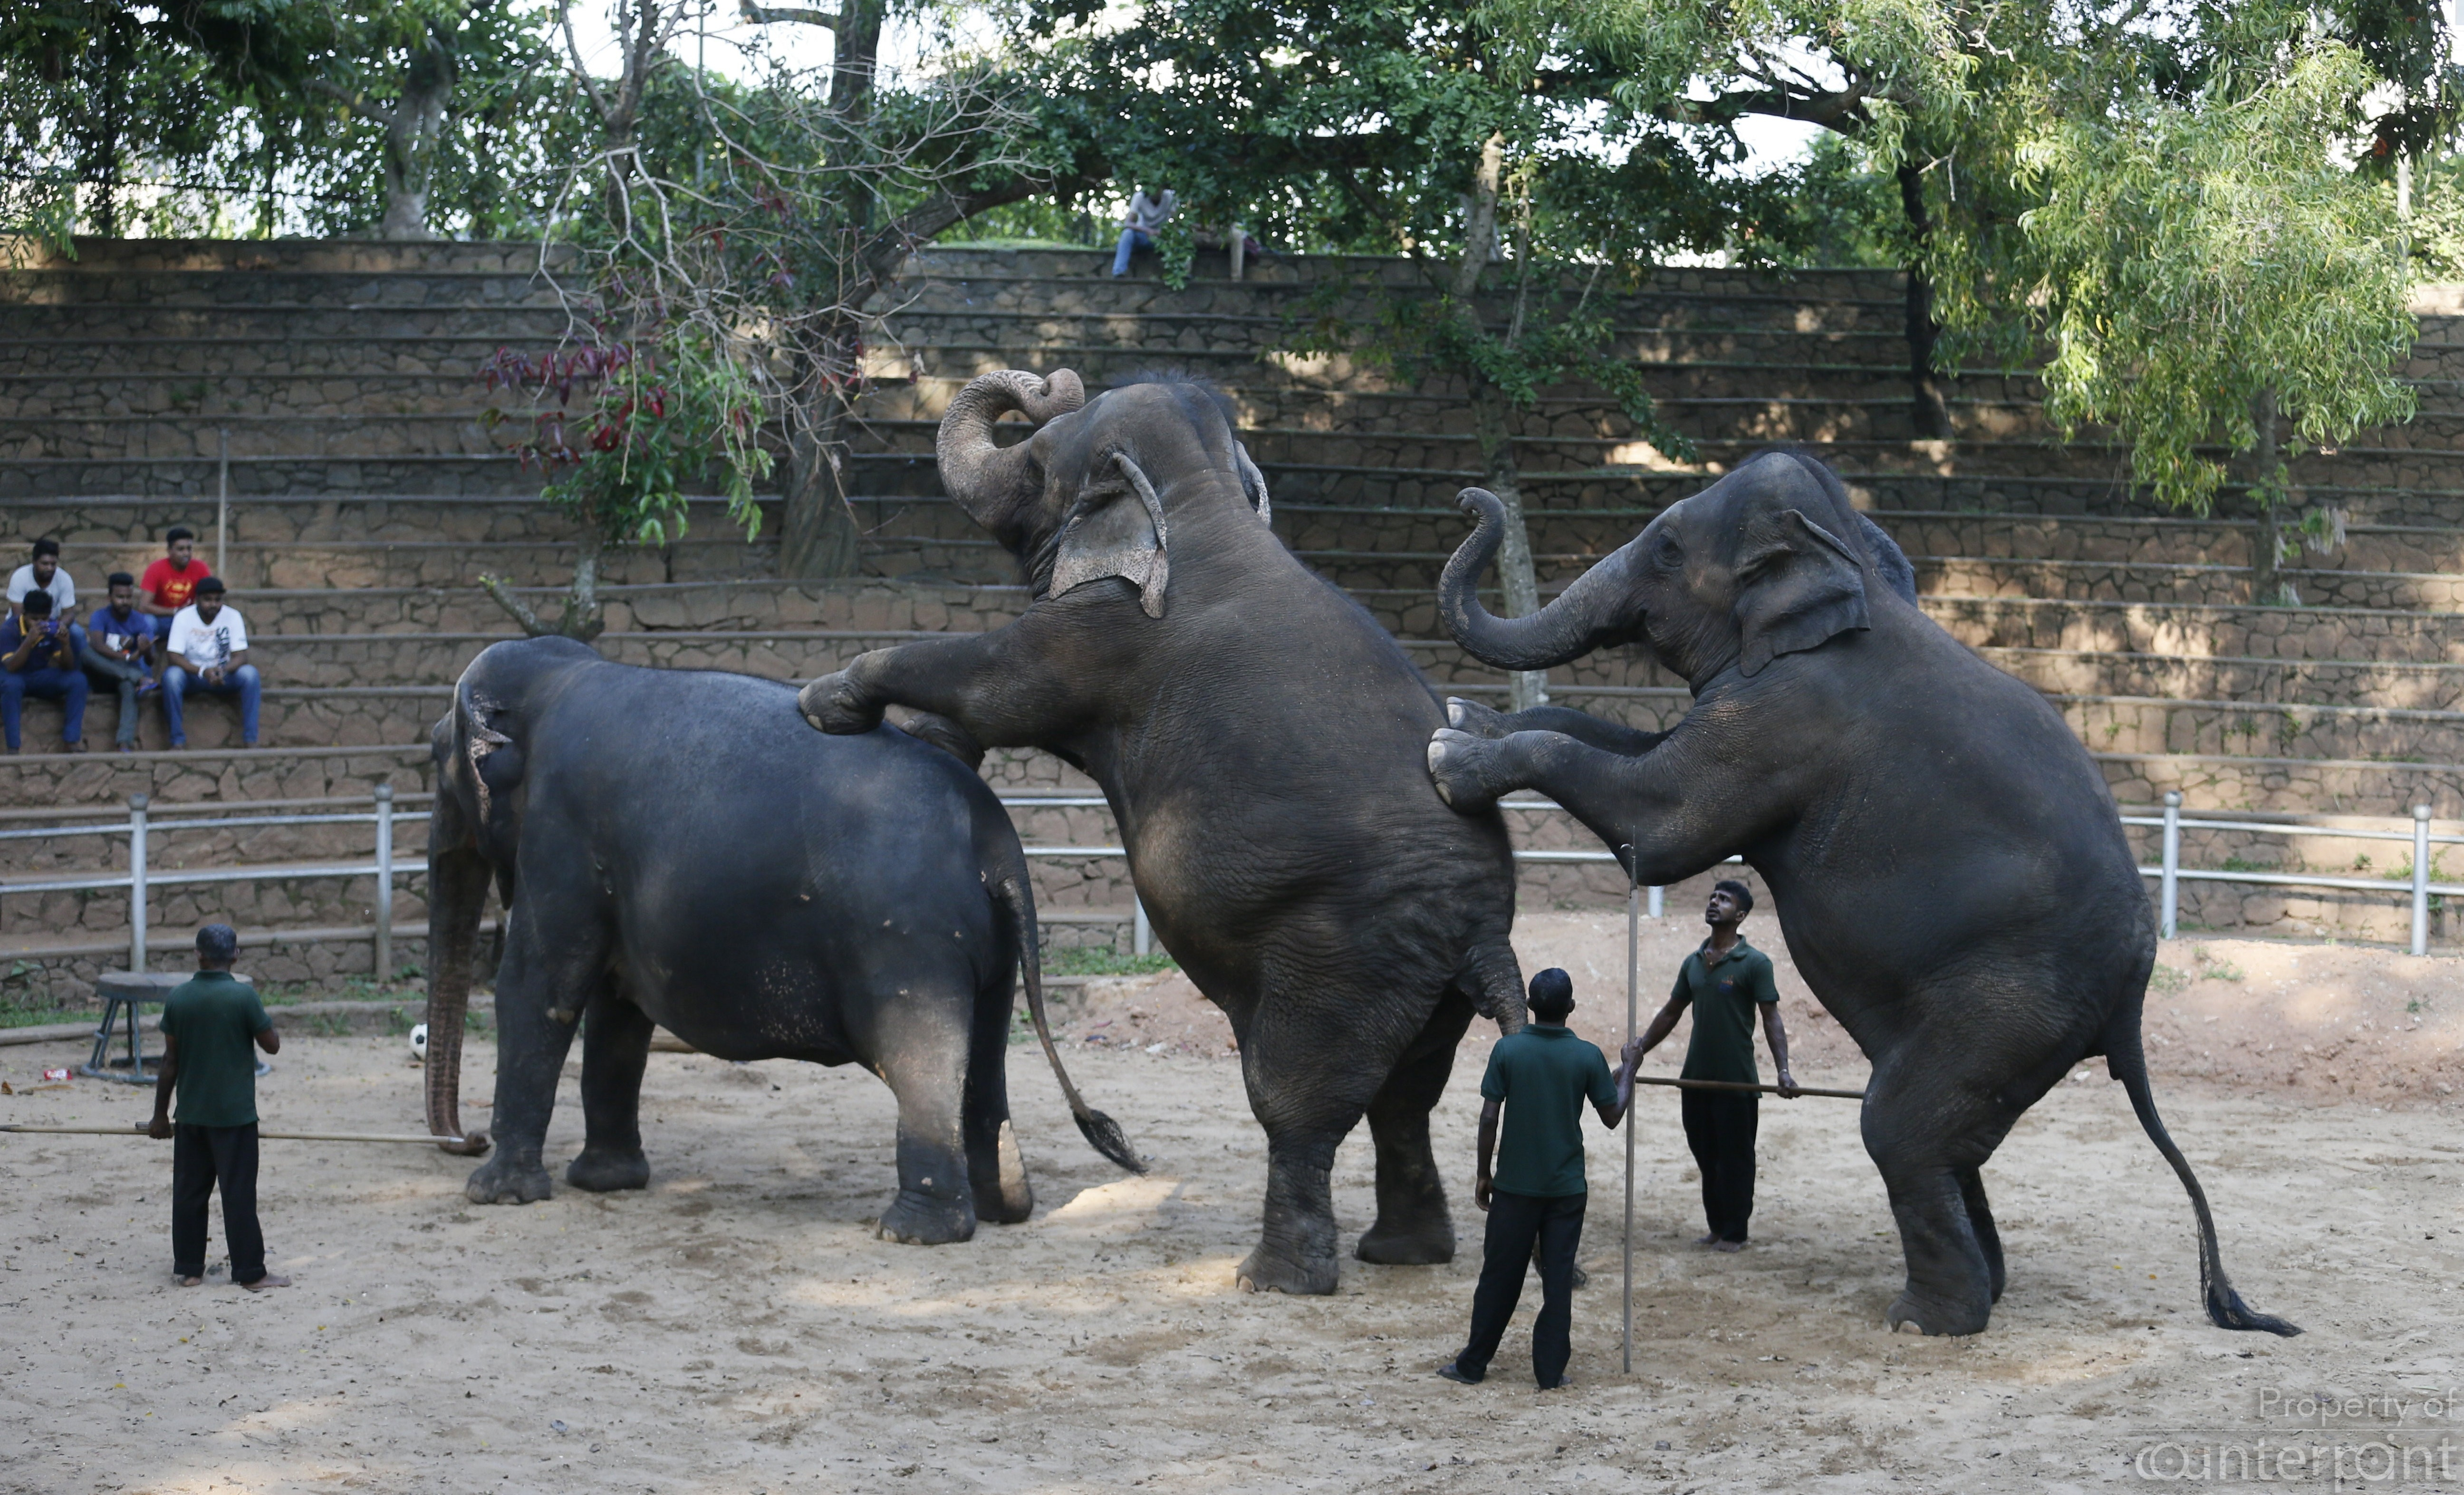 At the Dehiwala Zoo, There's a need for better animal care